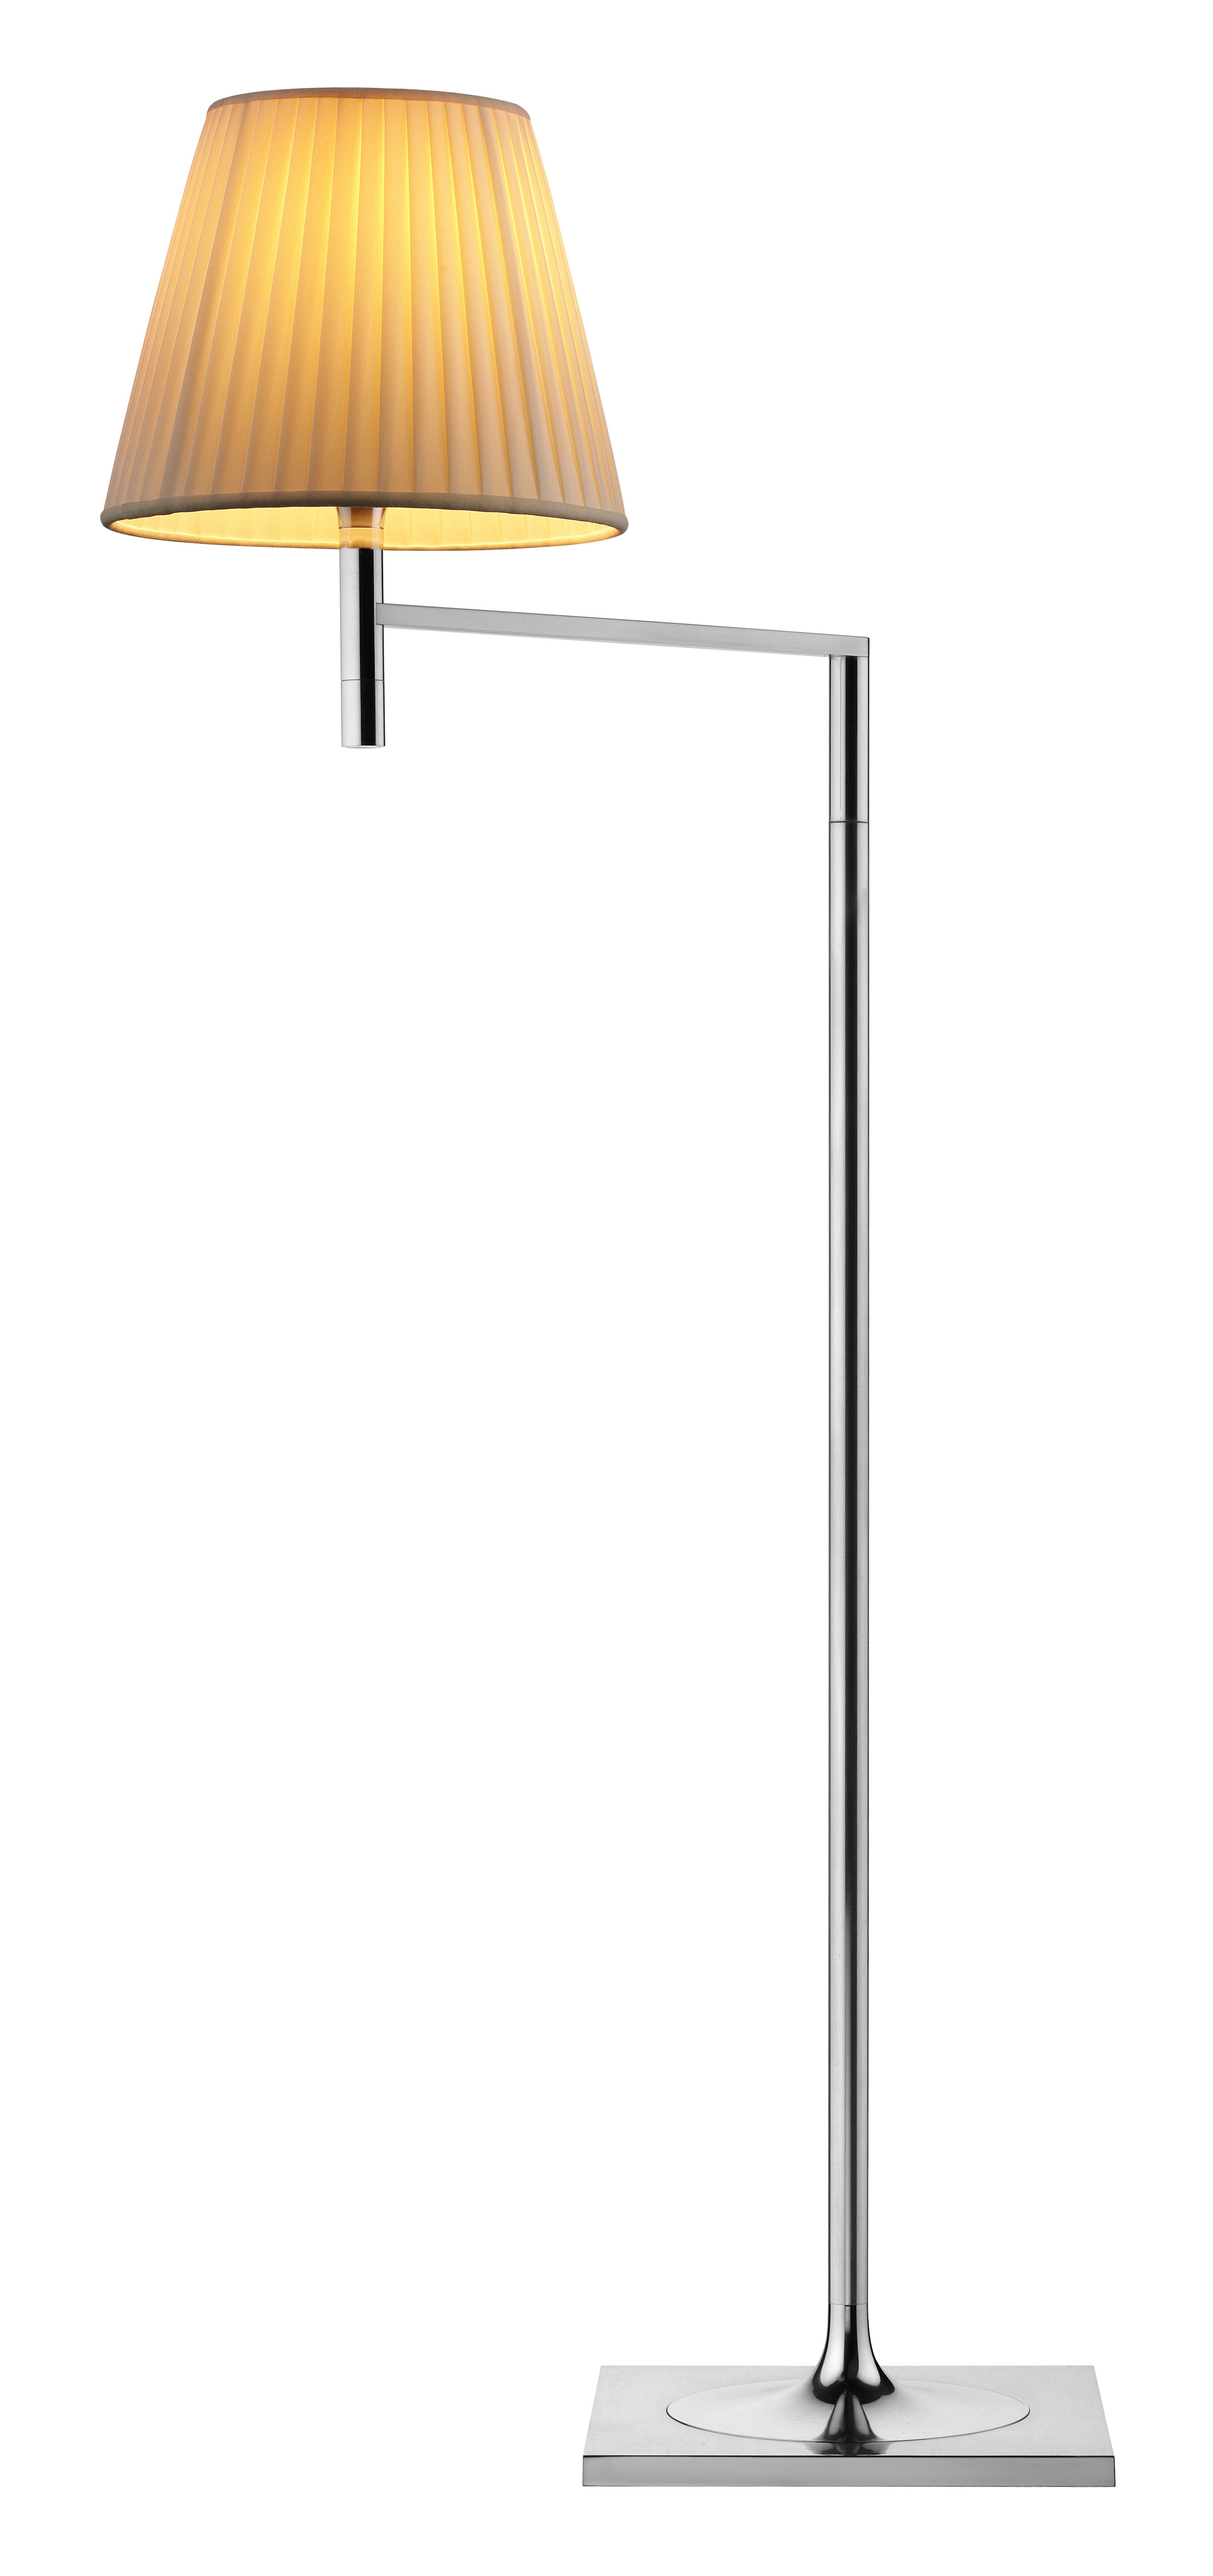 Lighting - Floor lamps - K Tribe F1 Soft Floor lamp - H 112 cm by Flos - Fabric - Fabric, Polished aluminium